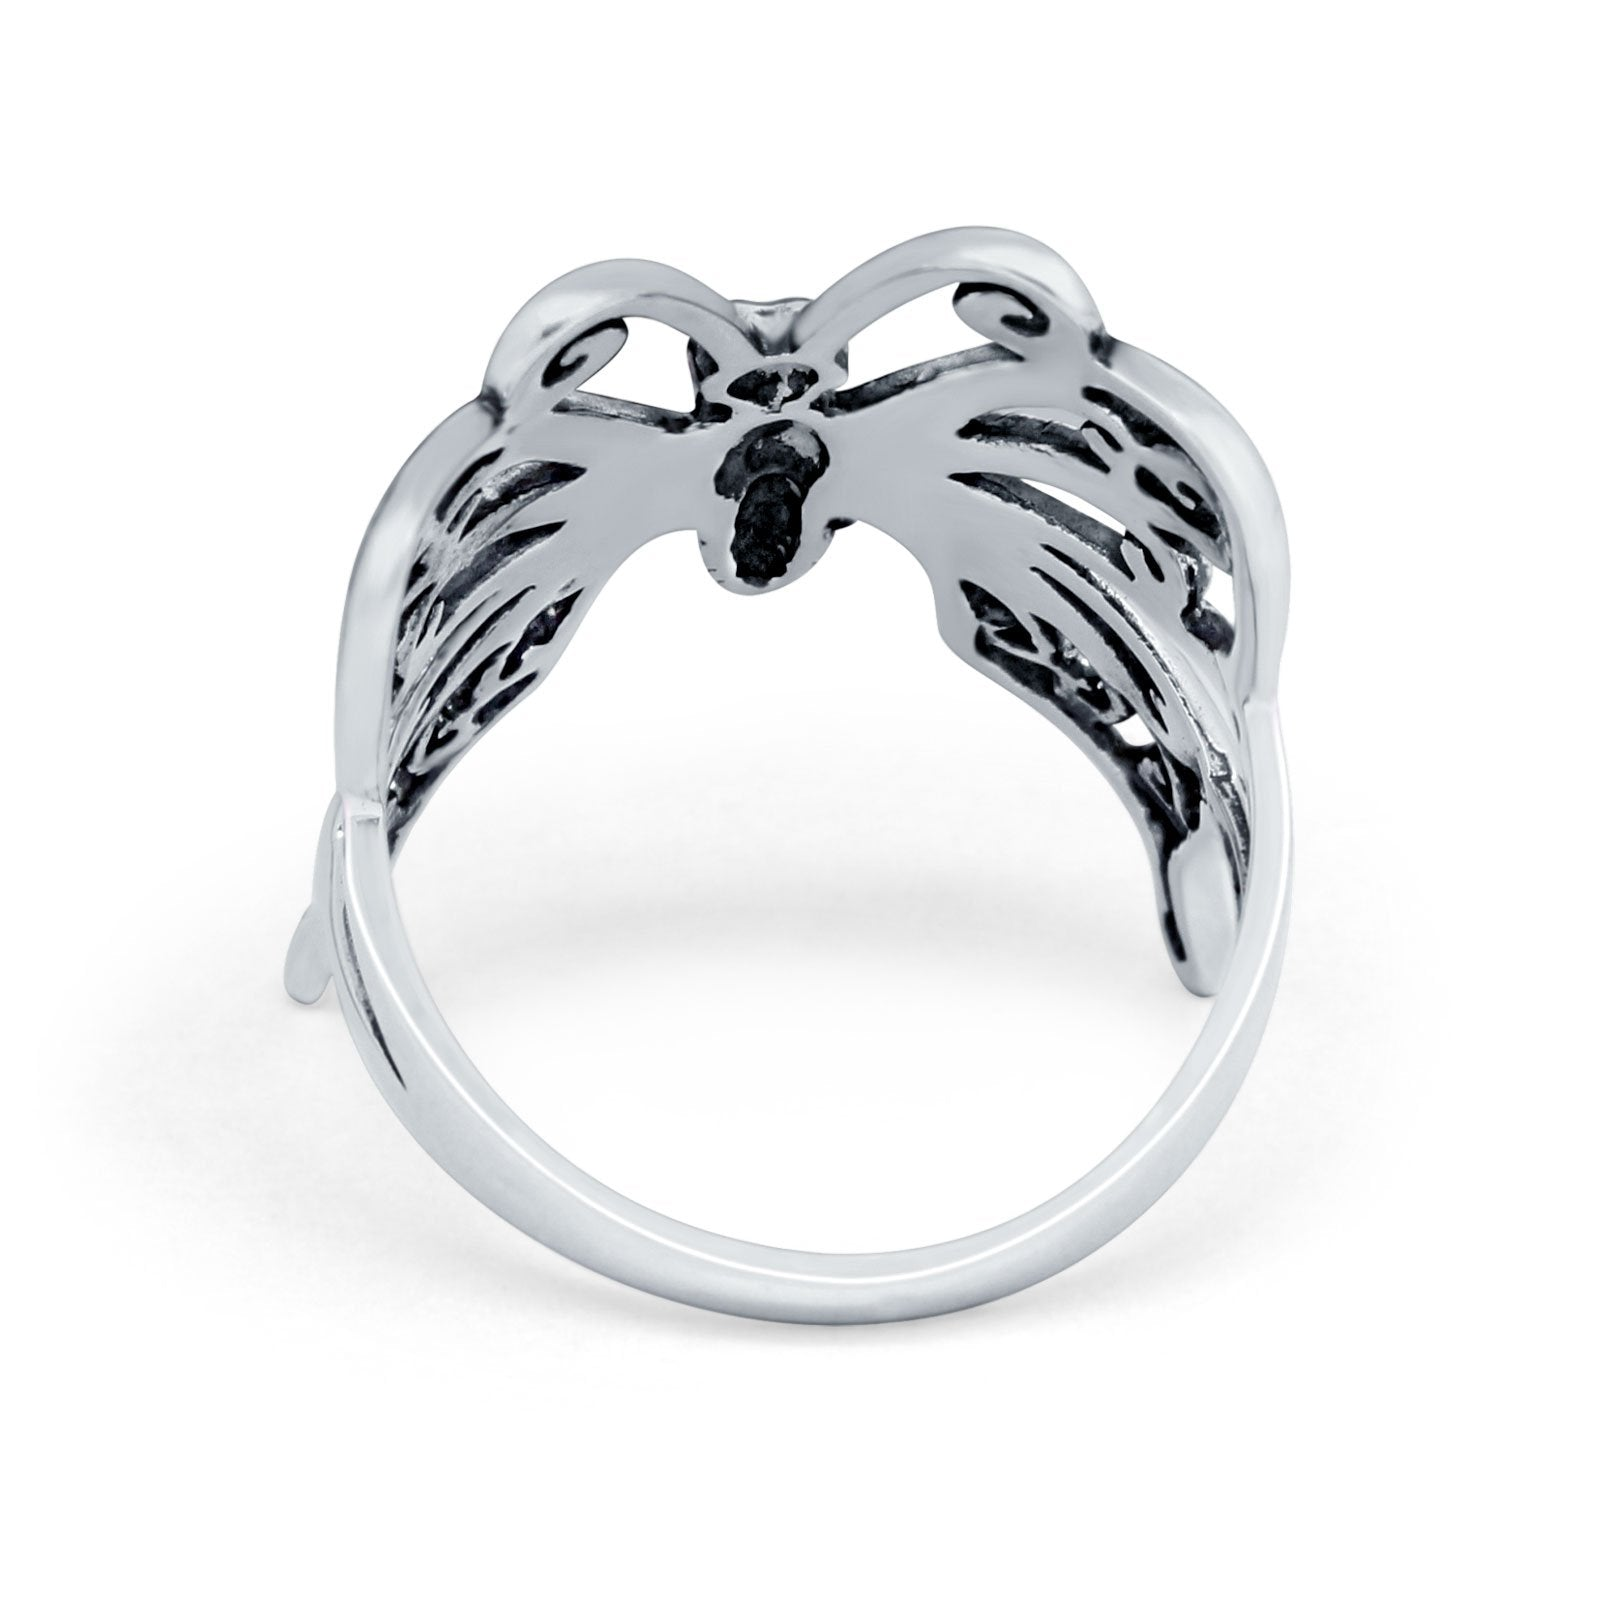 Sterling Silver Butterfly Filigree Ring Oxidized Round 925 Sterling Silver